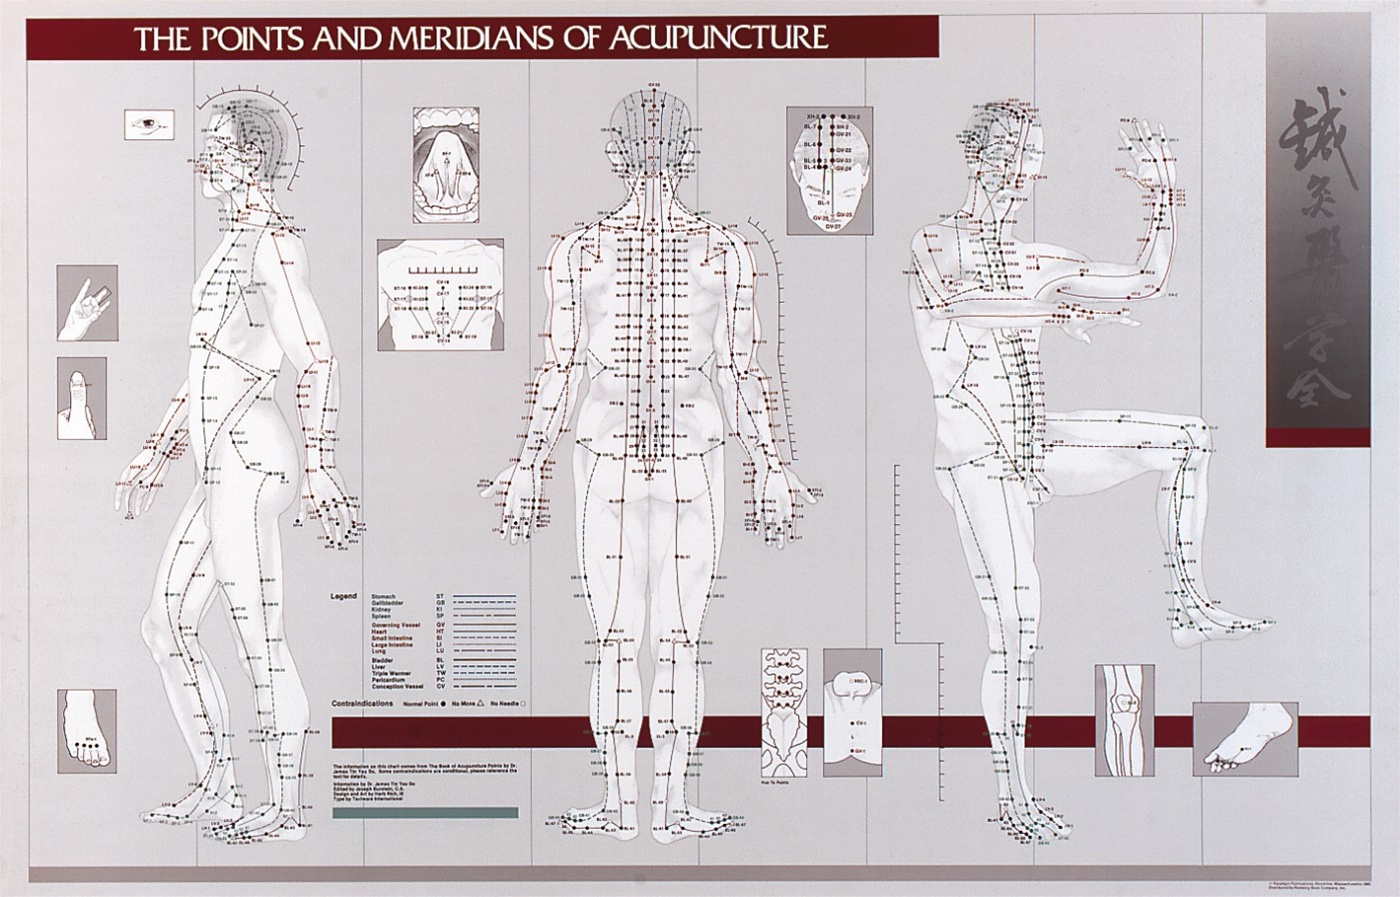 Pointeridians Of Acupuncture Laminated Chart Anatomy Models And Anatomical Charts